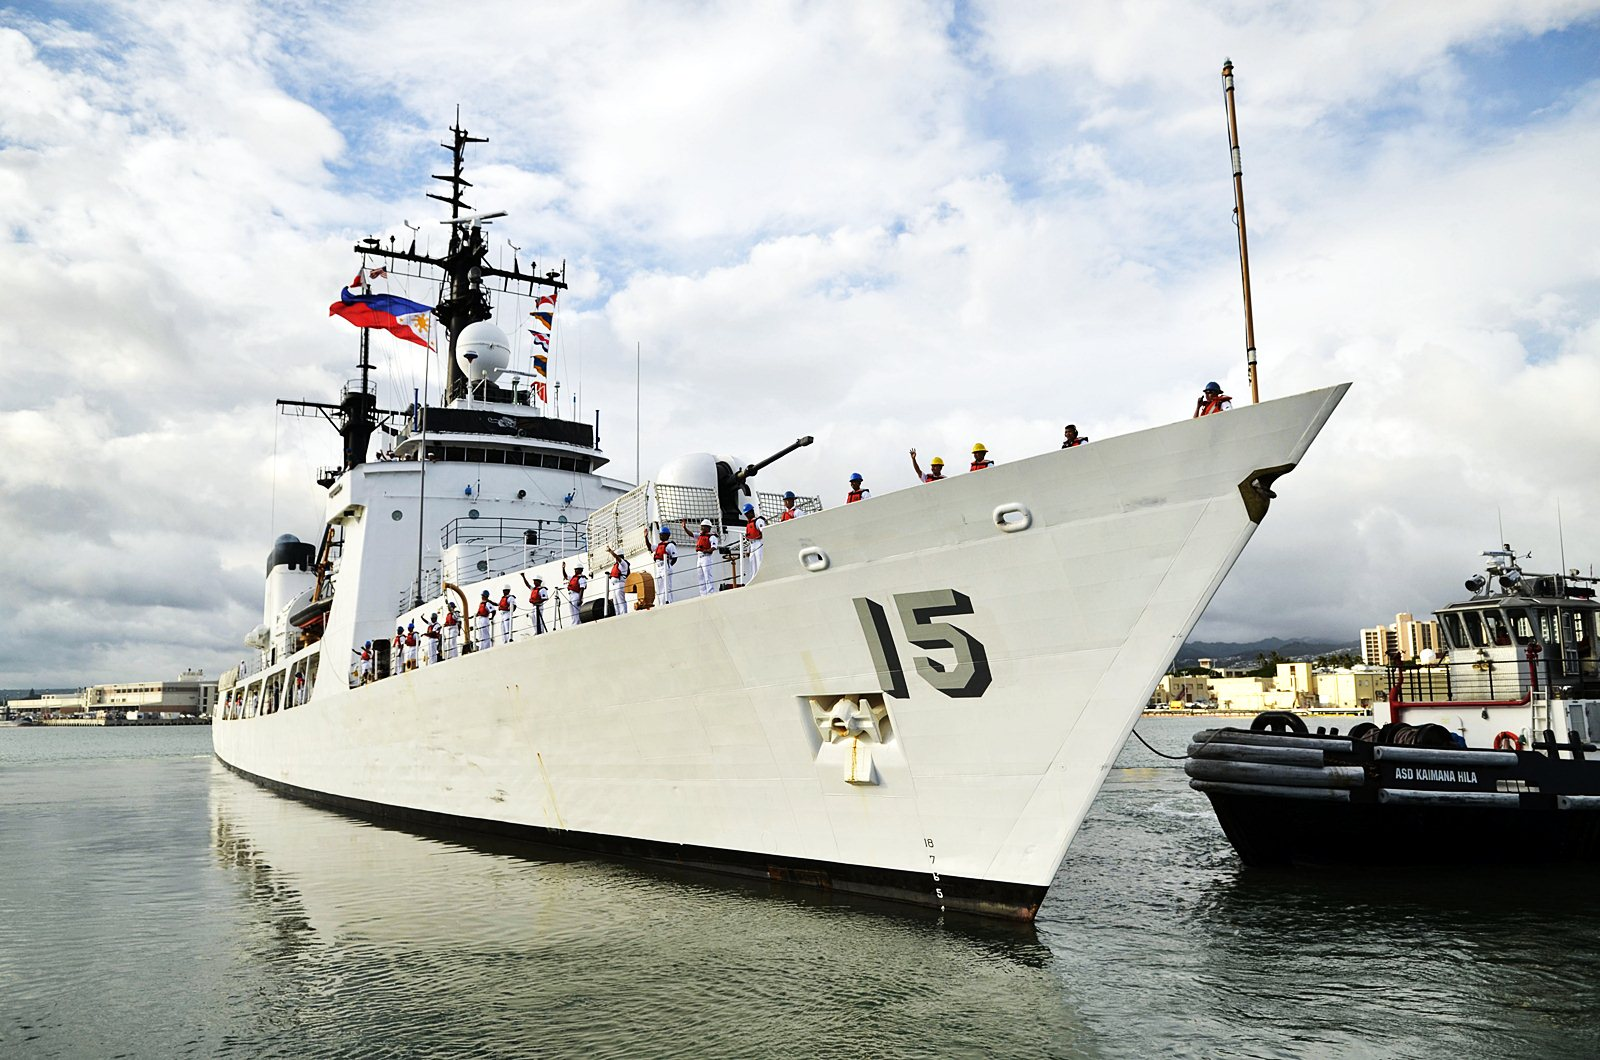 Philippine Navy Launches Brp Del Pilar Brp Tagbanua For Spartlys